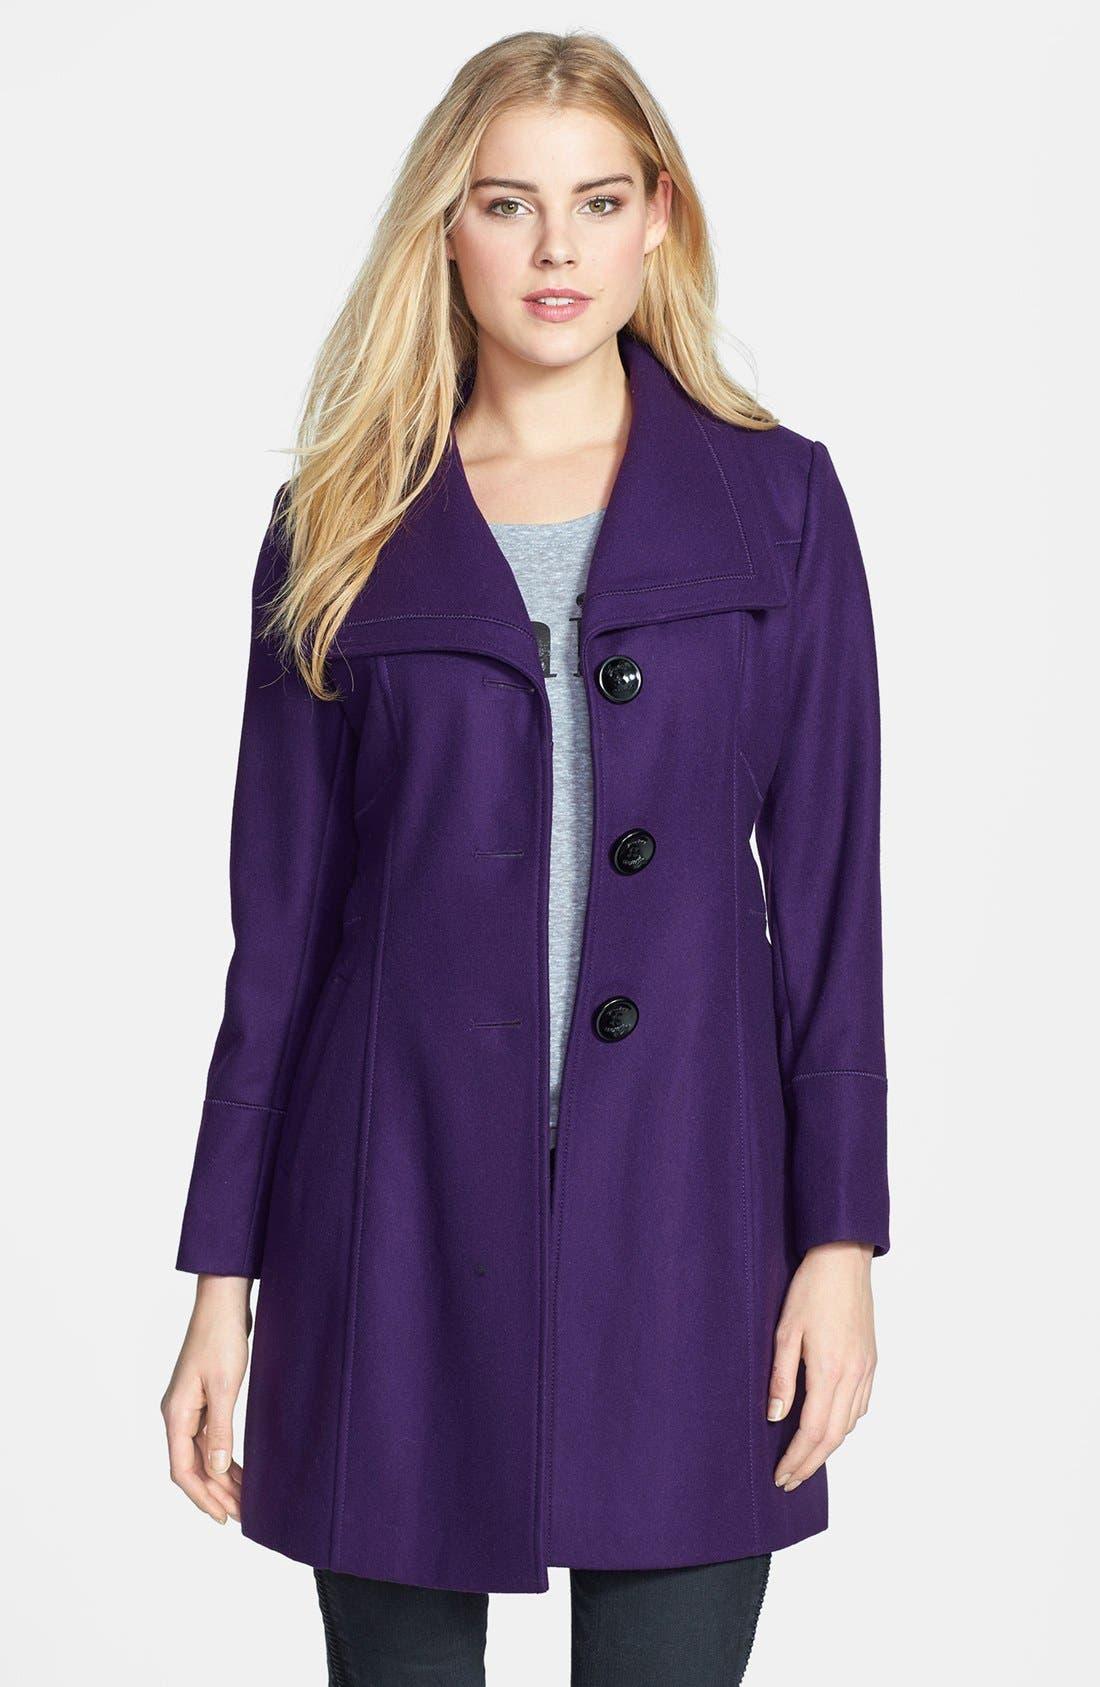 Alternate Image 1 Selected - GUESS Exaggerated Collar Wool Blend Coat (Petite)